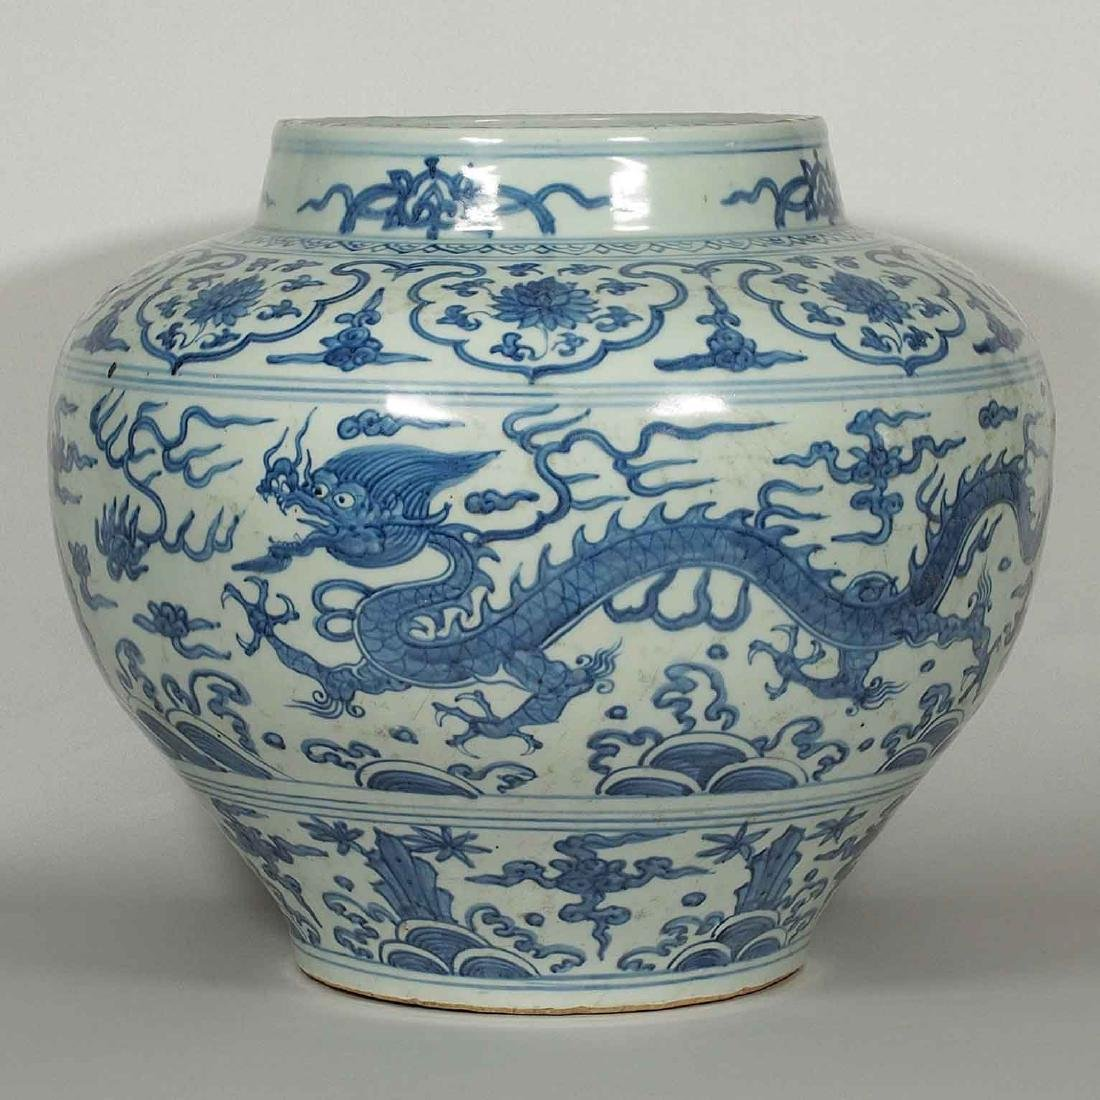 Massive Jar with Two Dragons Design, 15th Century Ming